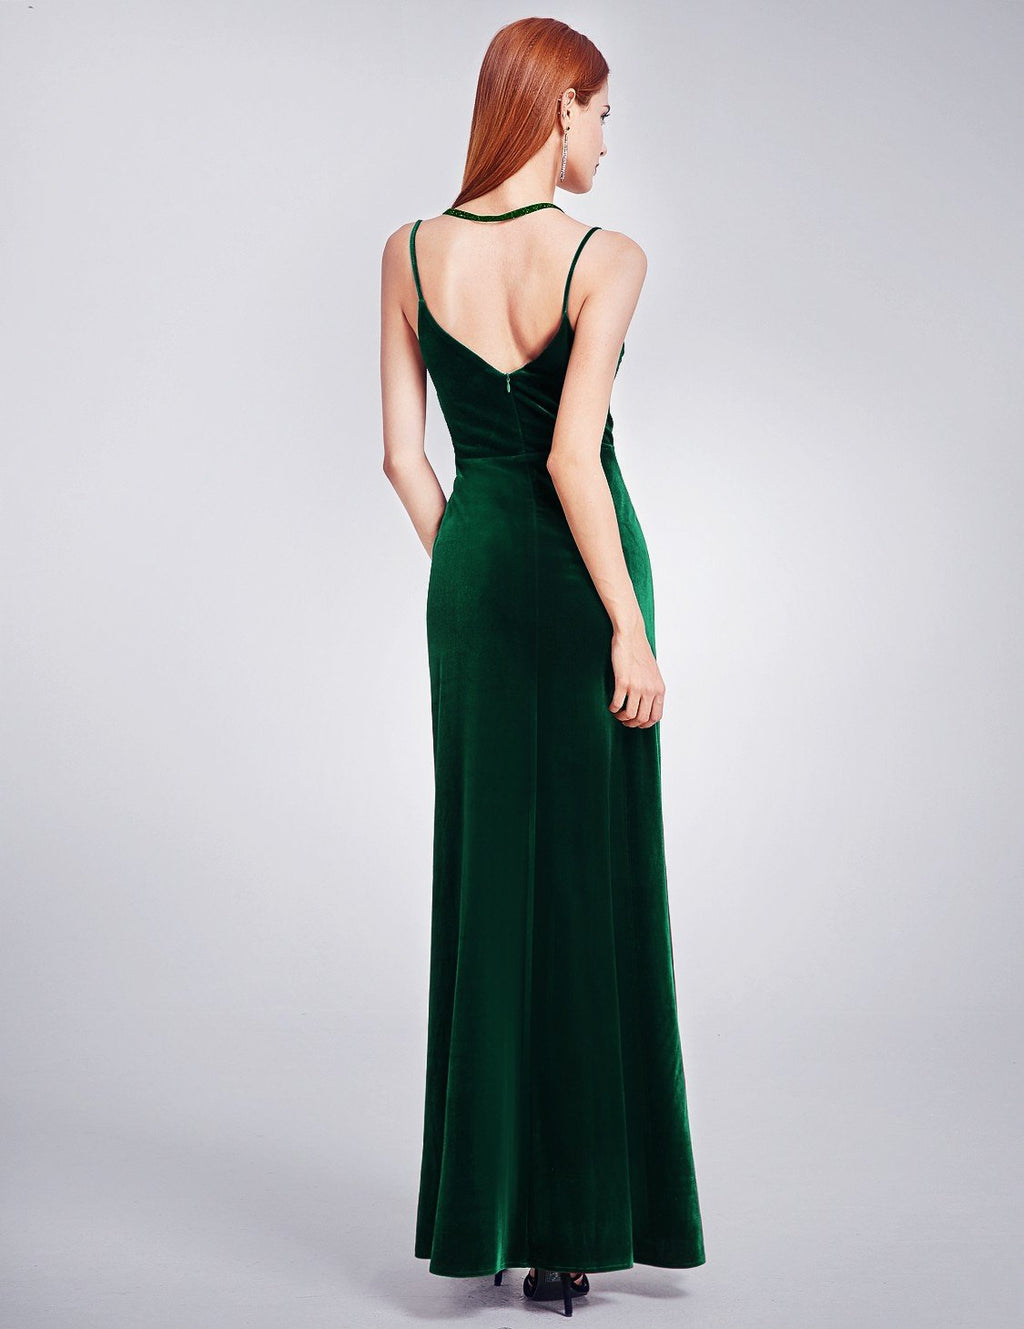 Sexy High Slit Evening Dress Dark Green